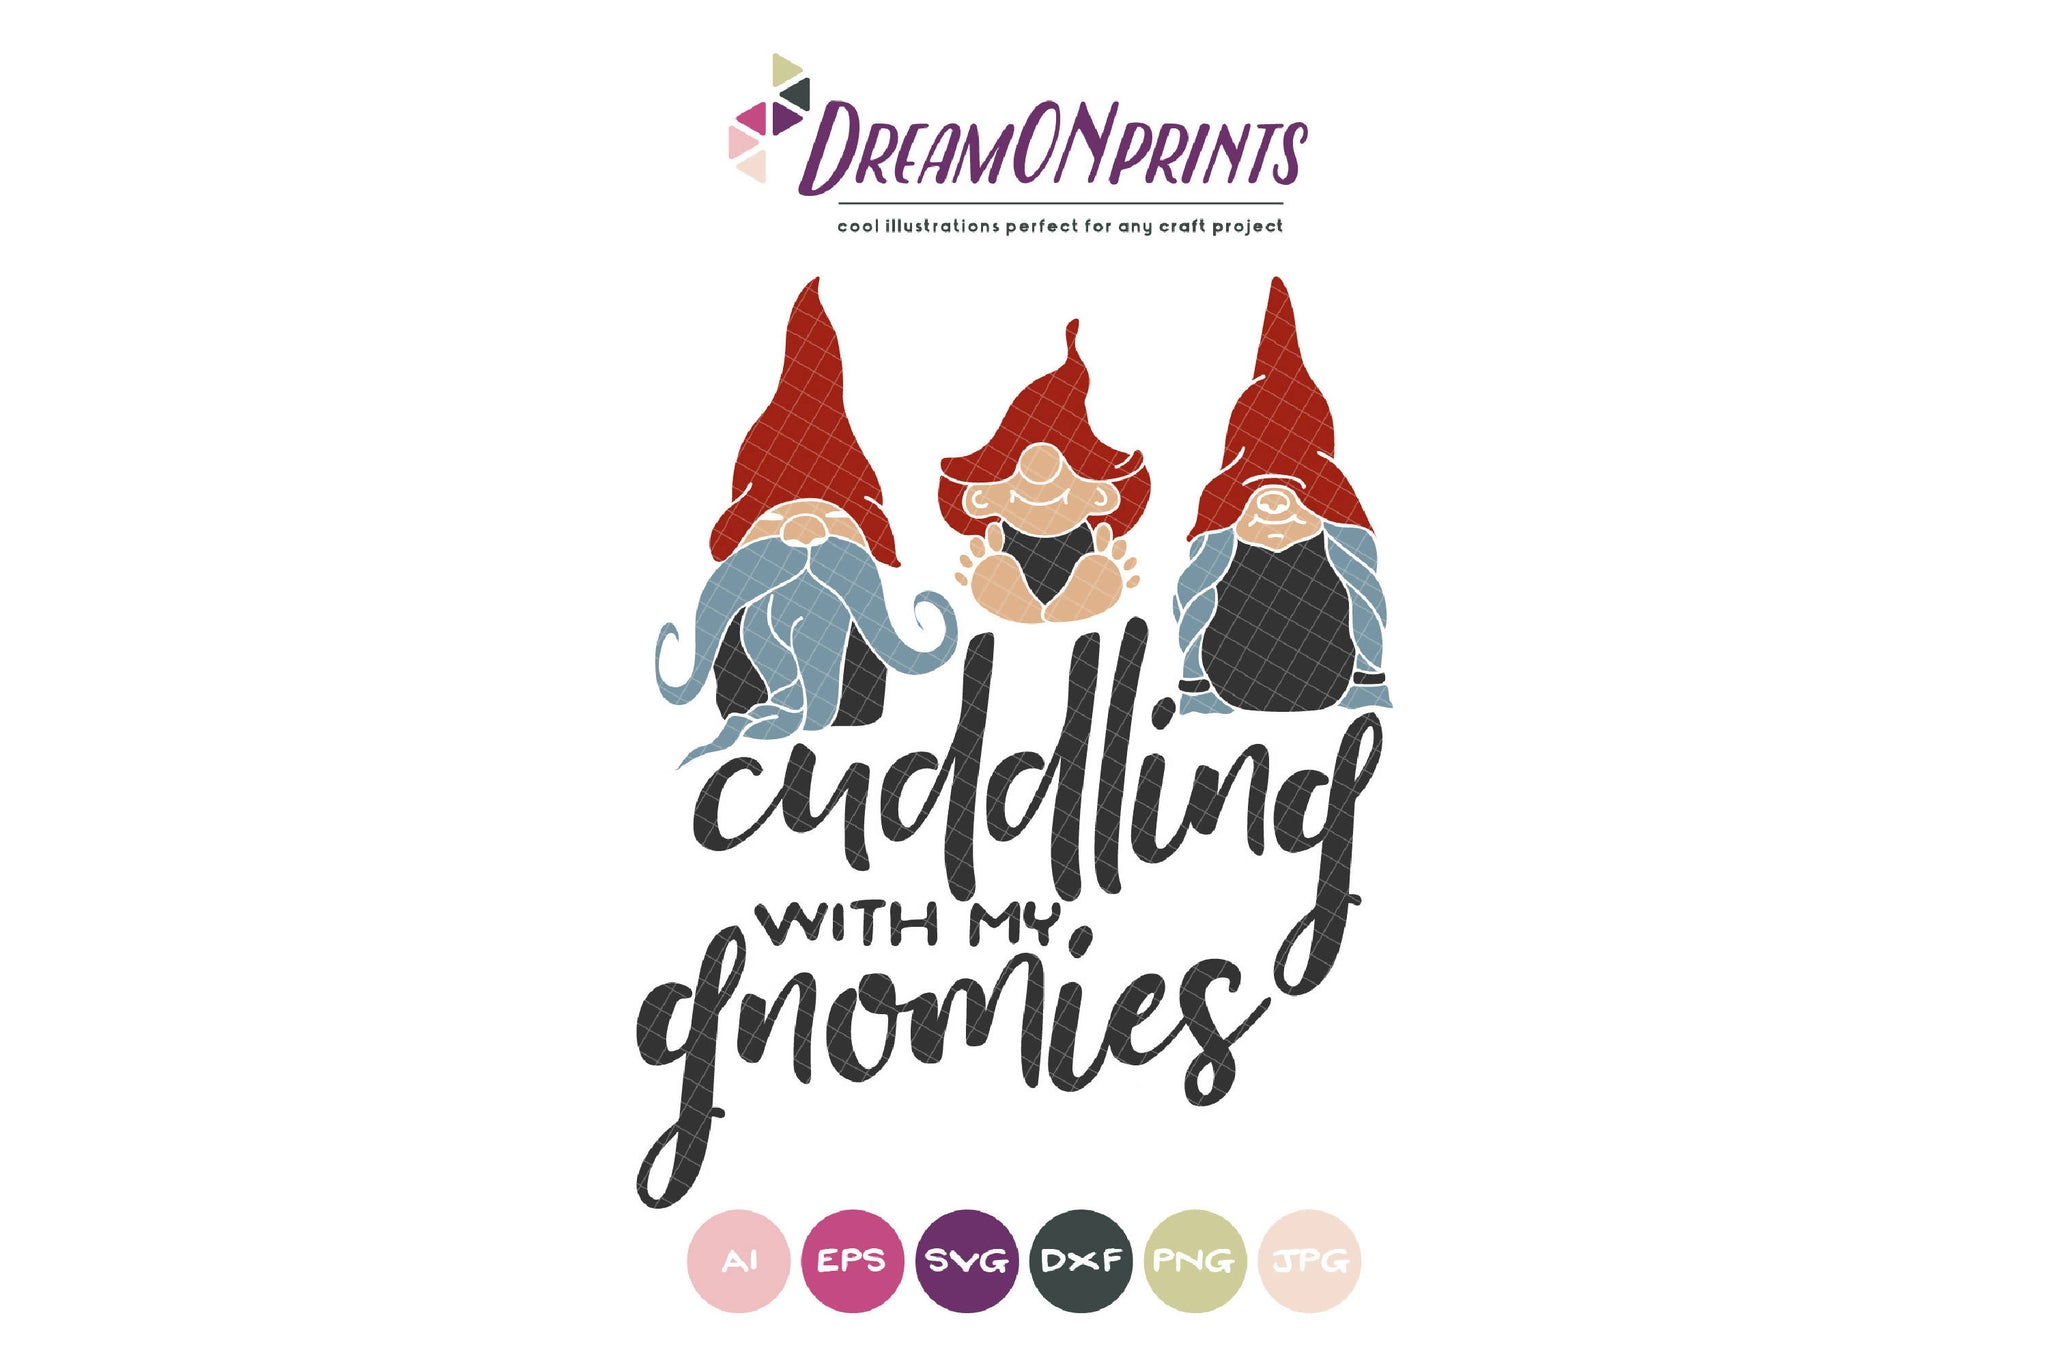 Christmas Gnome Svg.Gnome Svg Cuddling With My Gnomies Svg